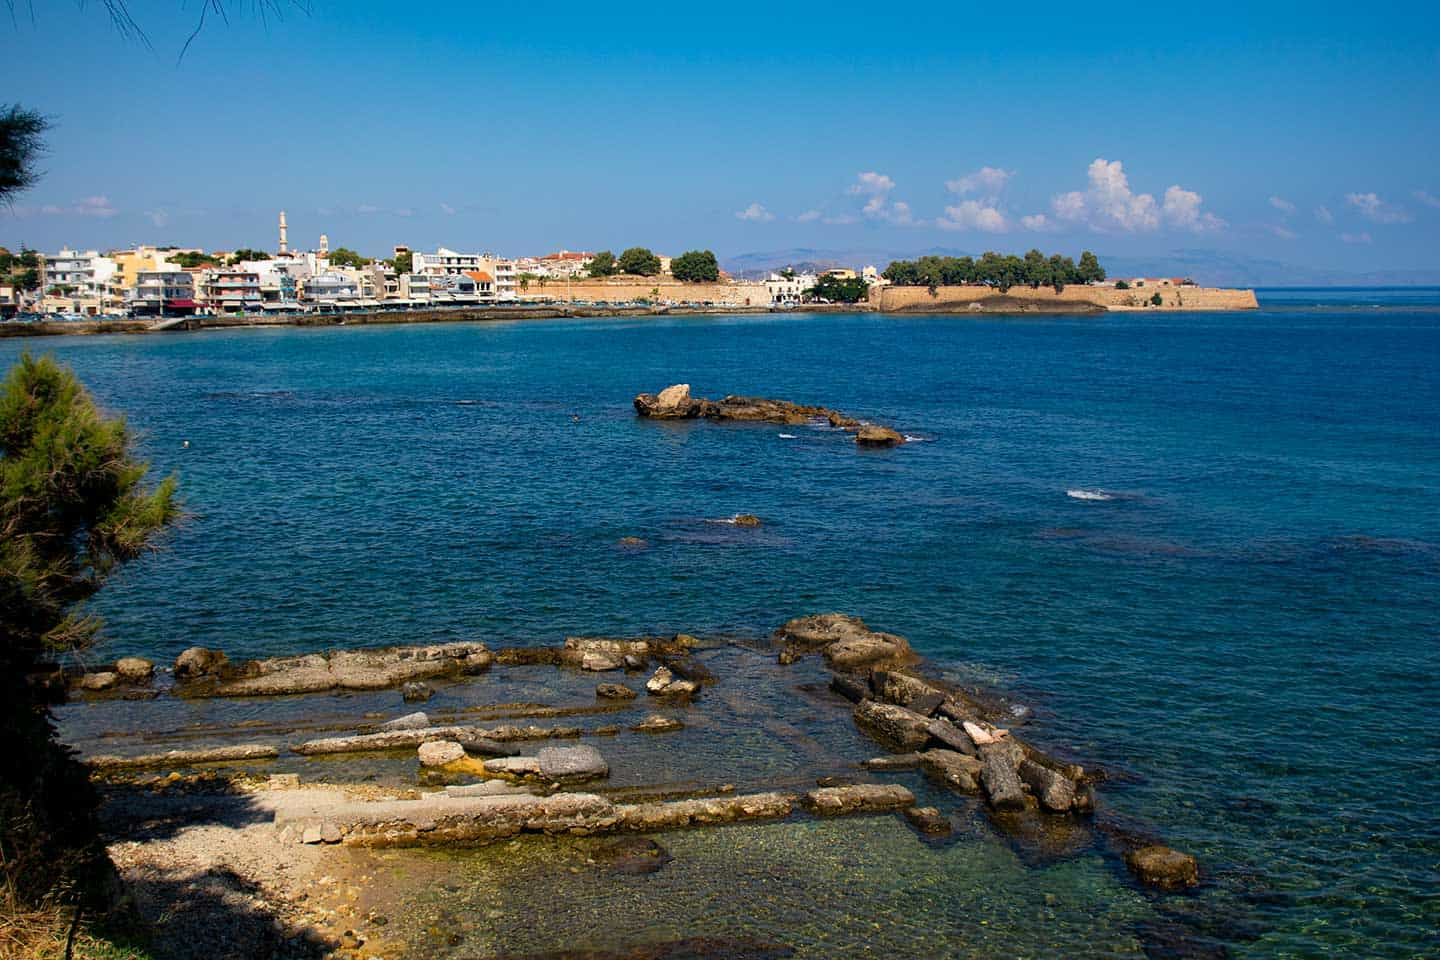 Image of rock baths at Koum Kapi beach Chania